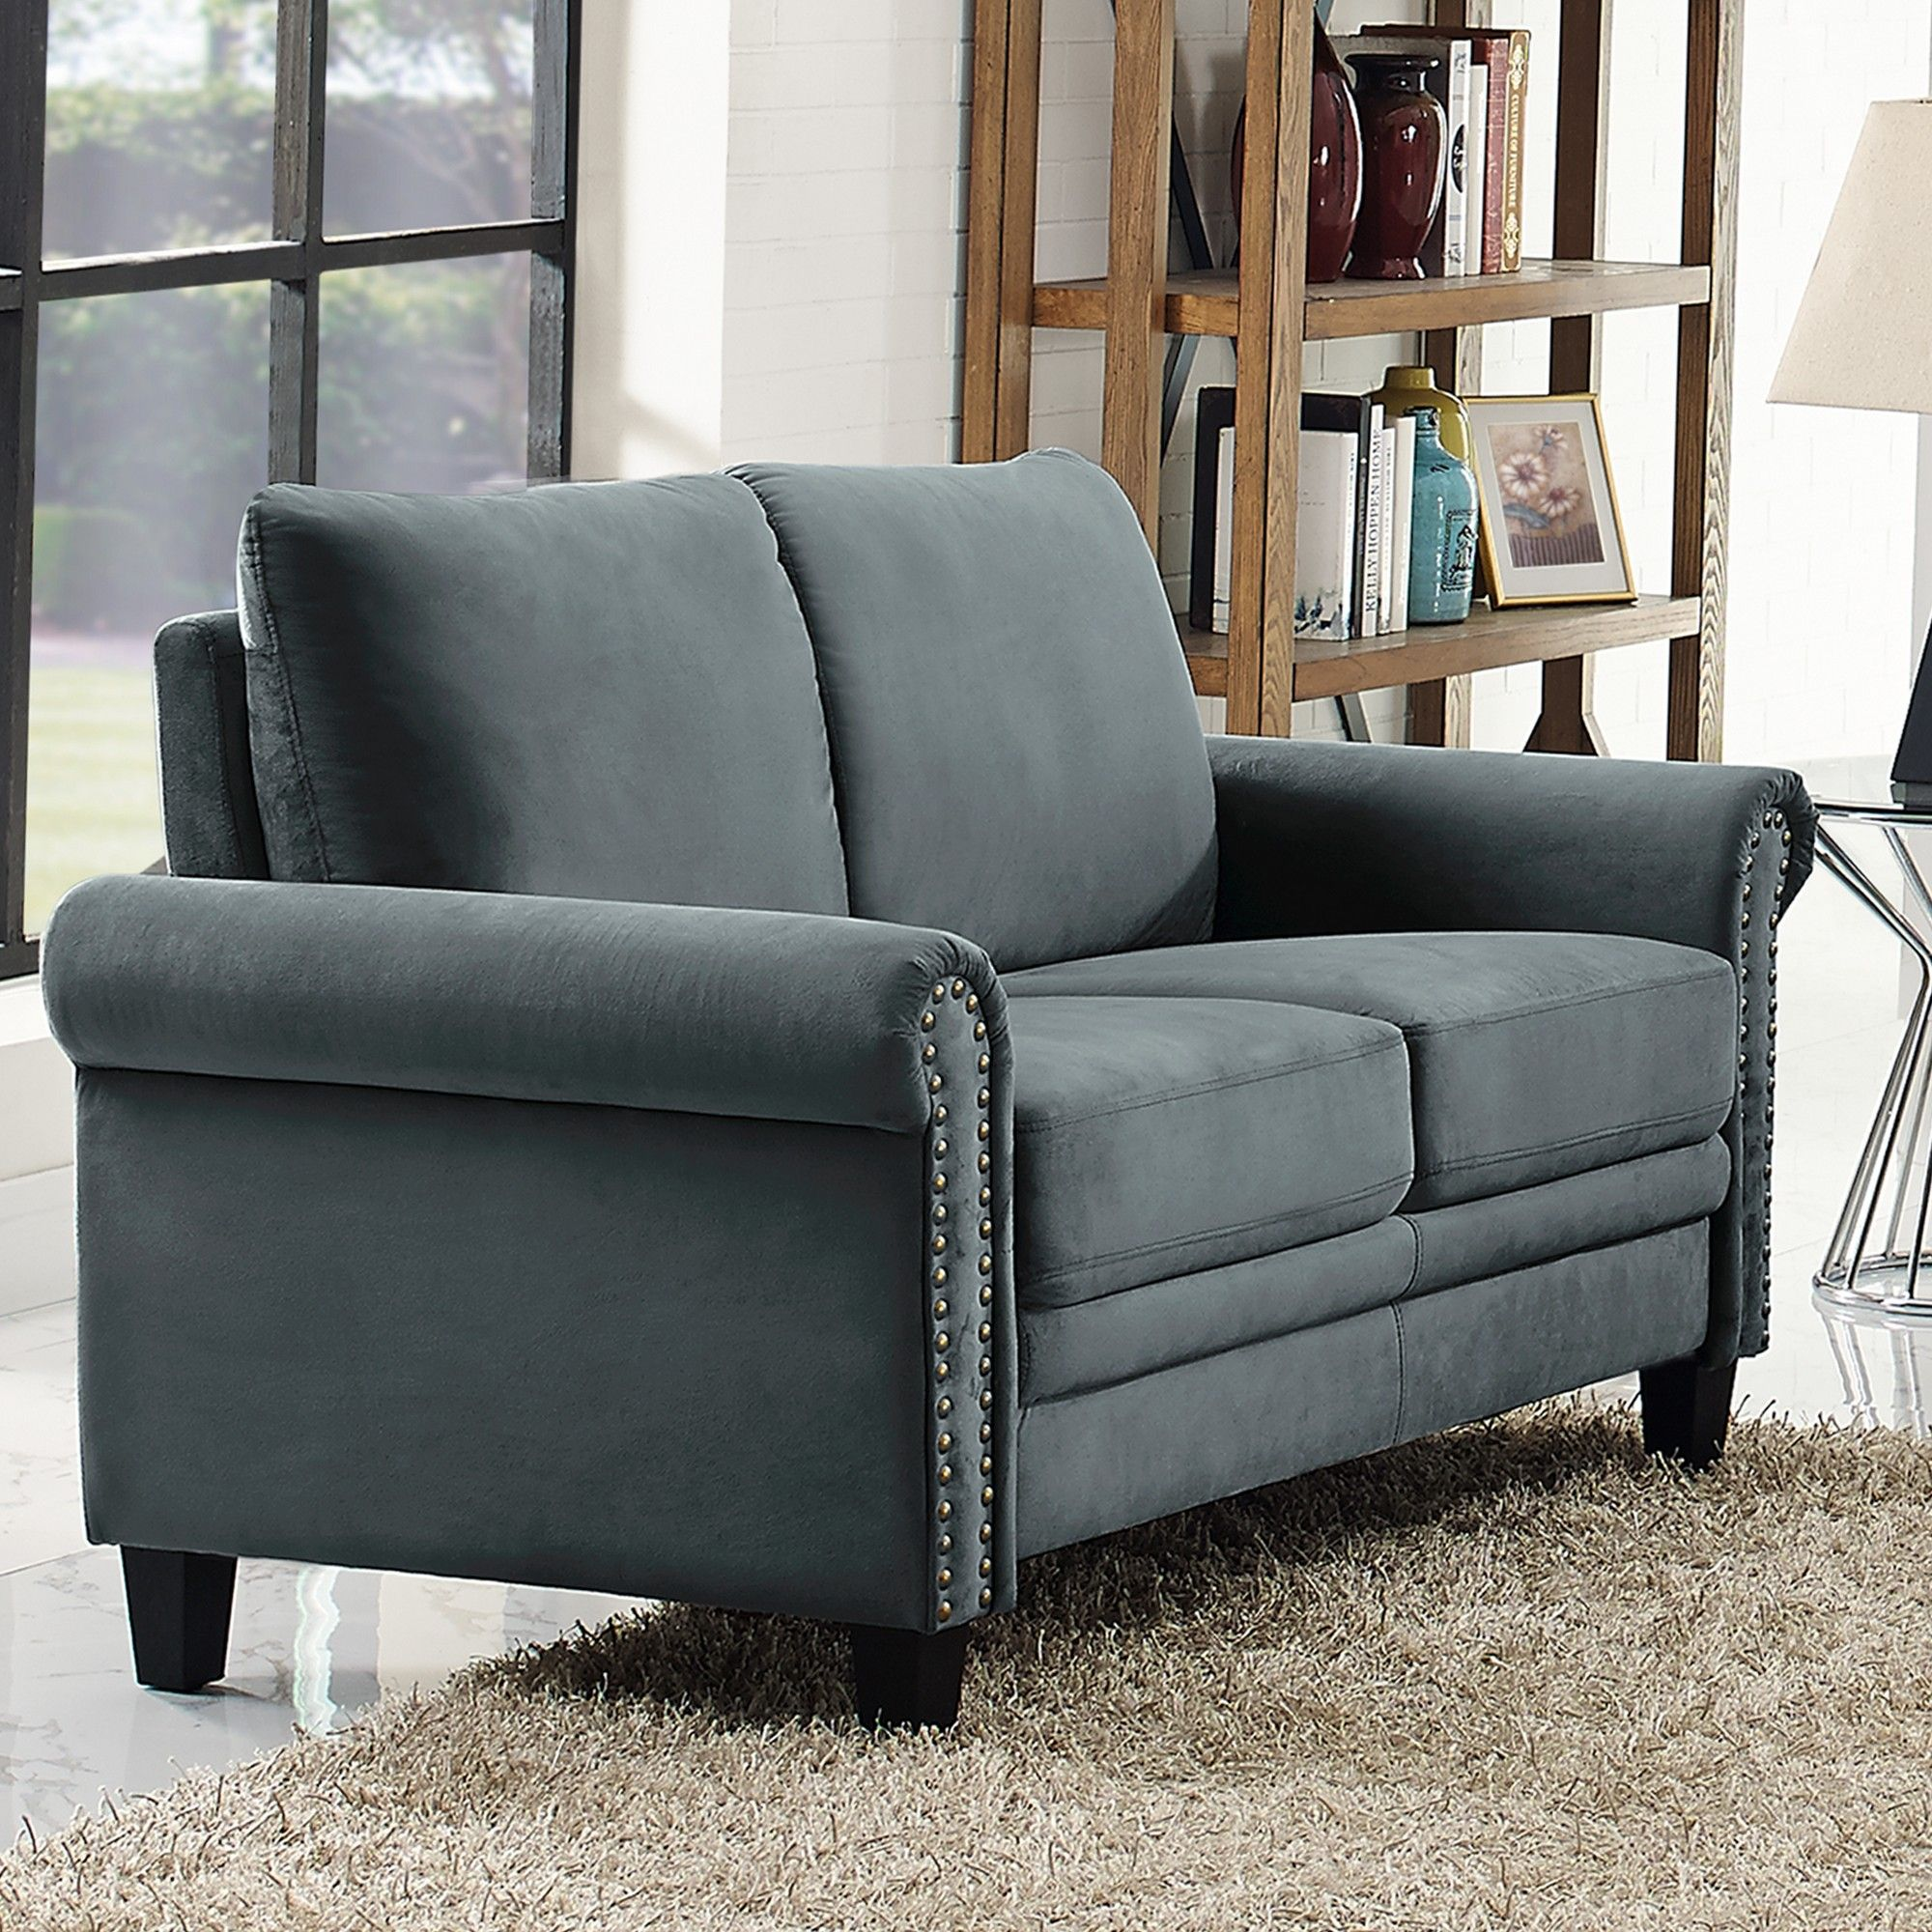 Awe Inspiring Averton Microfiber Upholstery Loveseat With Nailhead Ibusinesslaw Wood Chair Design Ideas Ibusinesslaworg